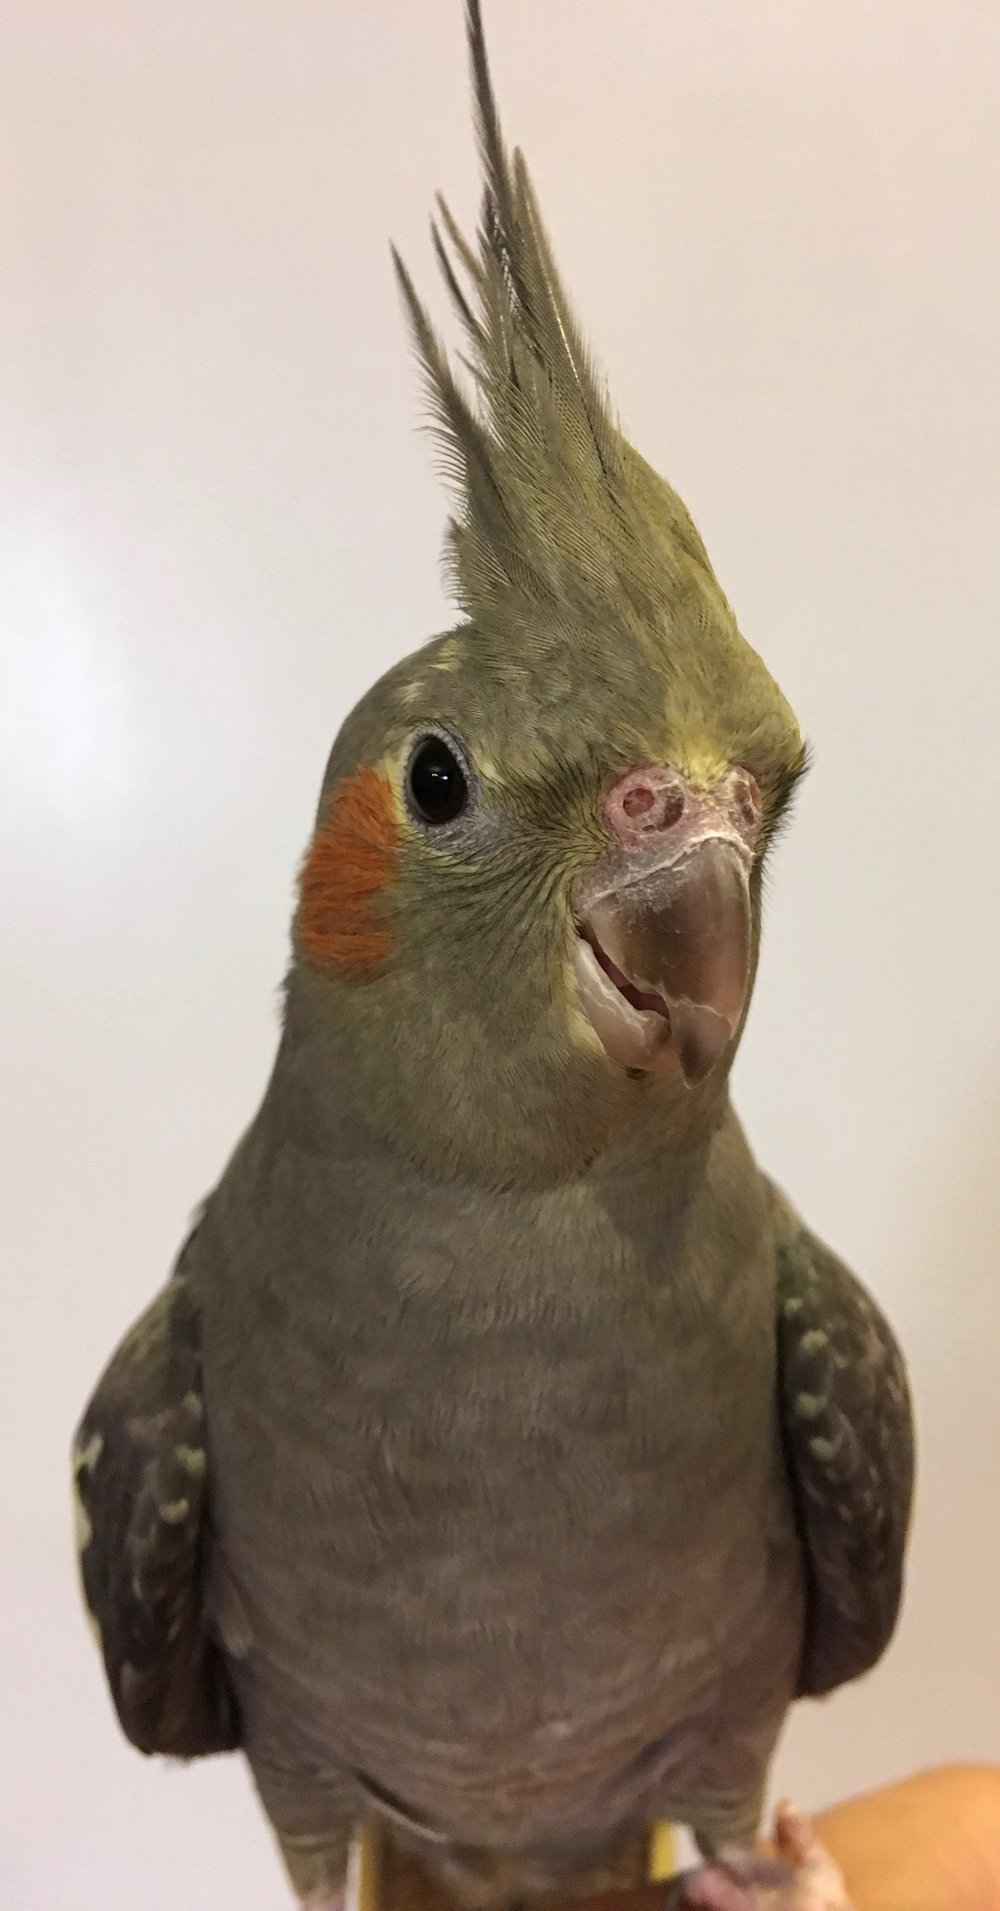 2 year old Chicklet was adopted in October 2018! Congrats sweet little girl! Cockatiels live for 20+ years and are native to Australia.